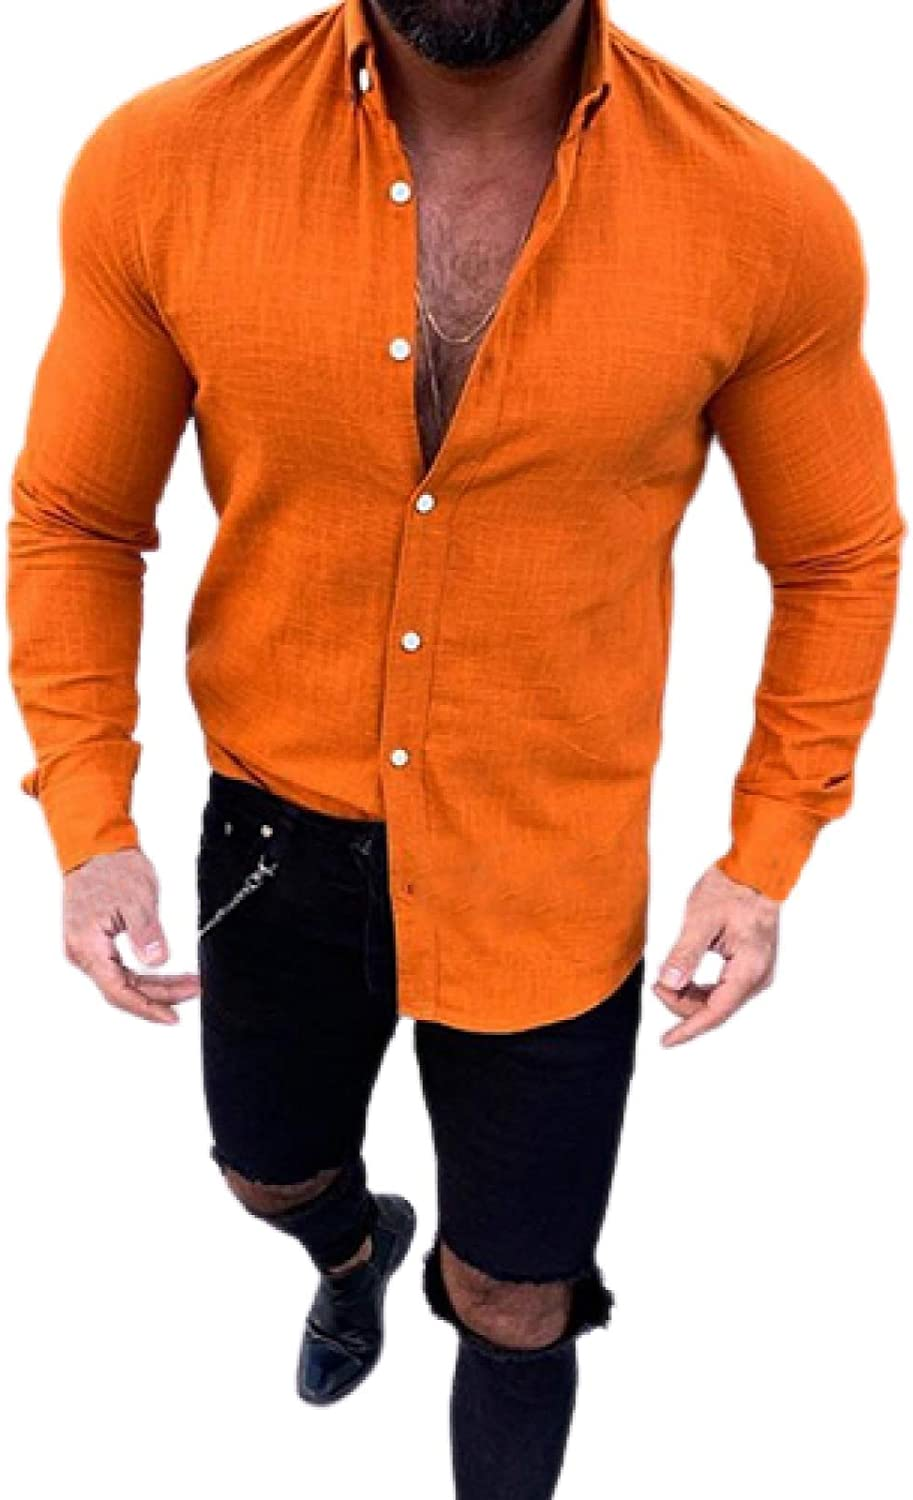 Men's Long-Sleeved Shirts Simple Fashion All- Inexpensive Max 56% OFF Casual Solid Color